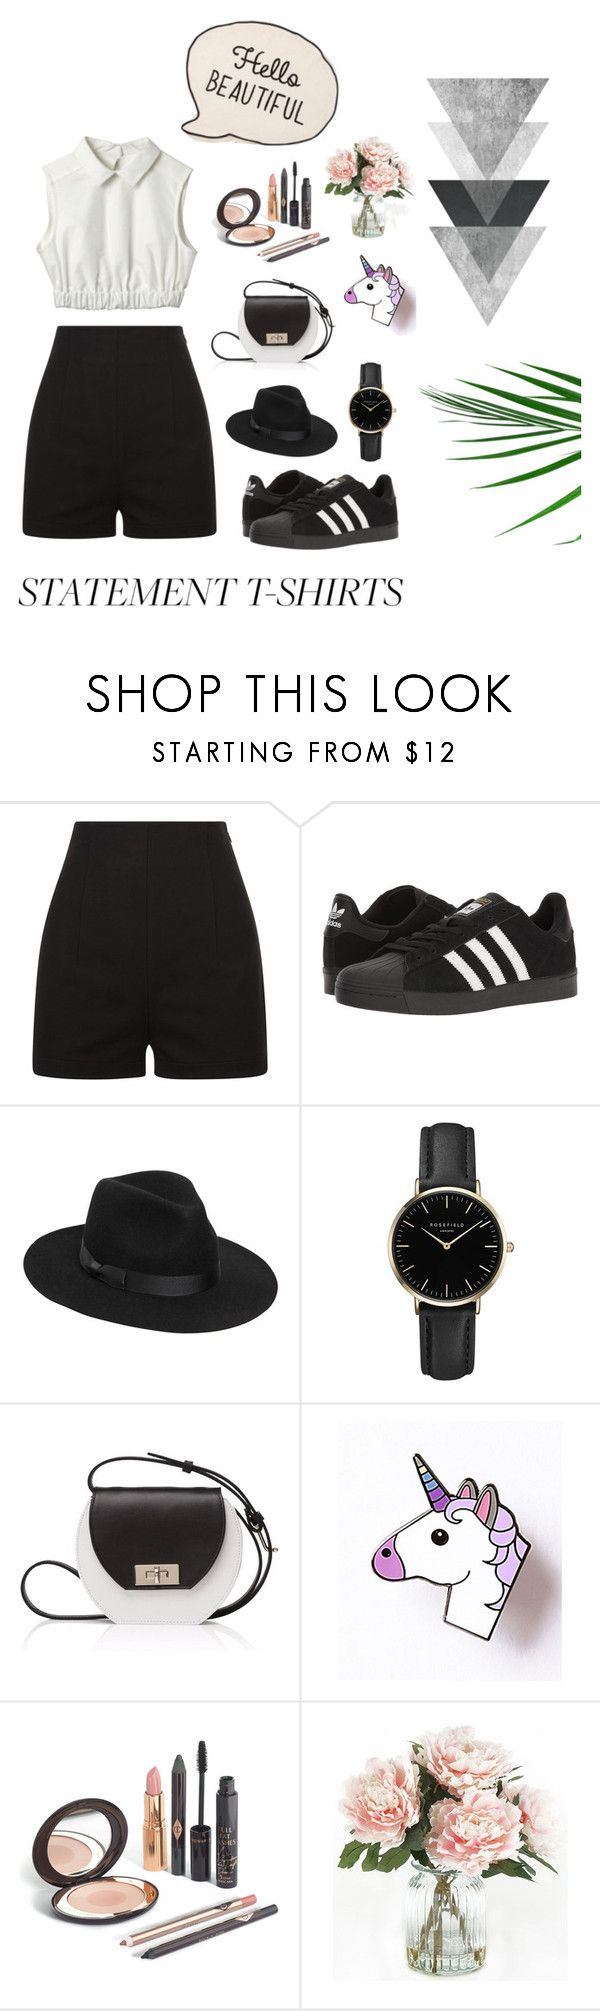 """""""Date with friend for carnaval"""" by damlastyle ❤ liked on Polyvore featuring adidas, Lack of Color, ROSEFIELD, Joanna Maxham and Home Decorators Collection"""